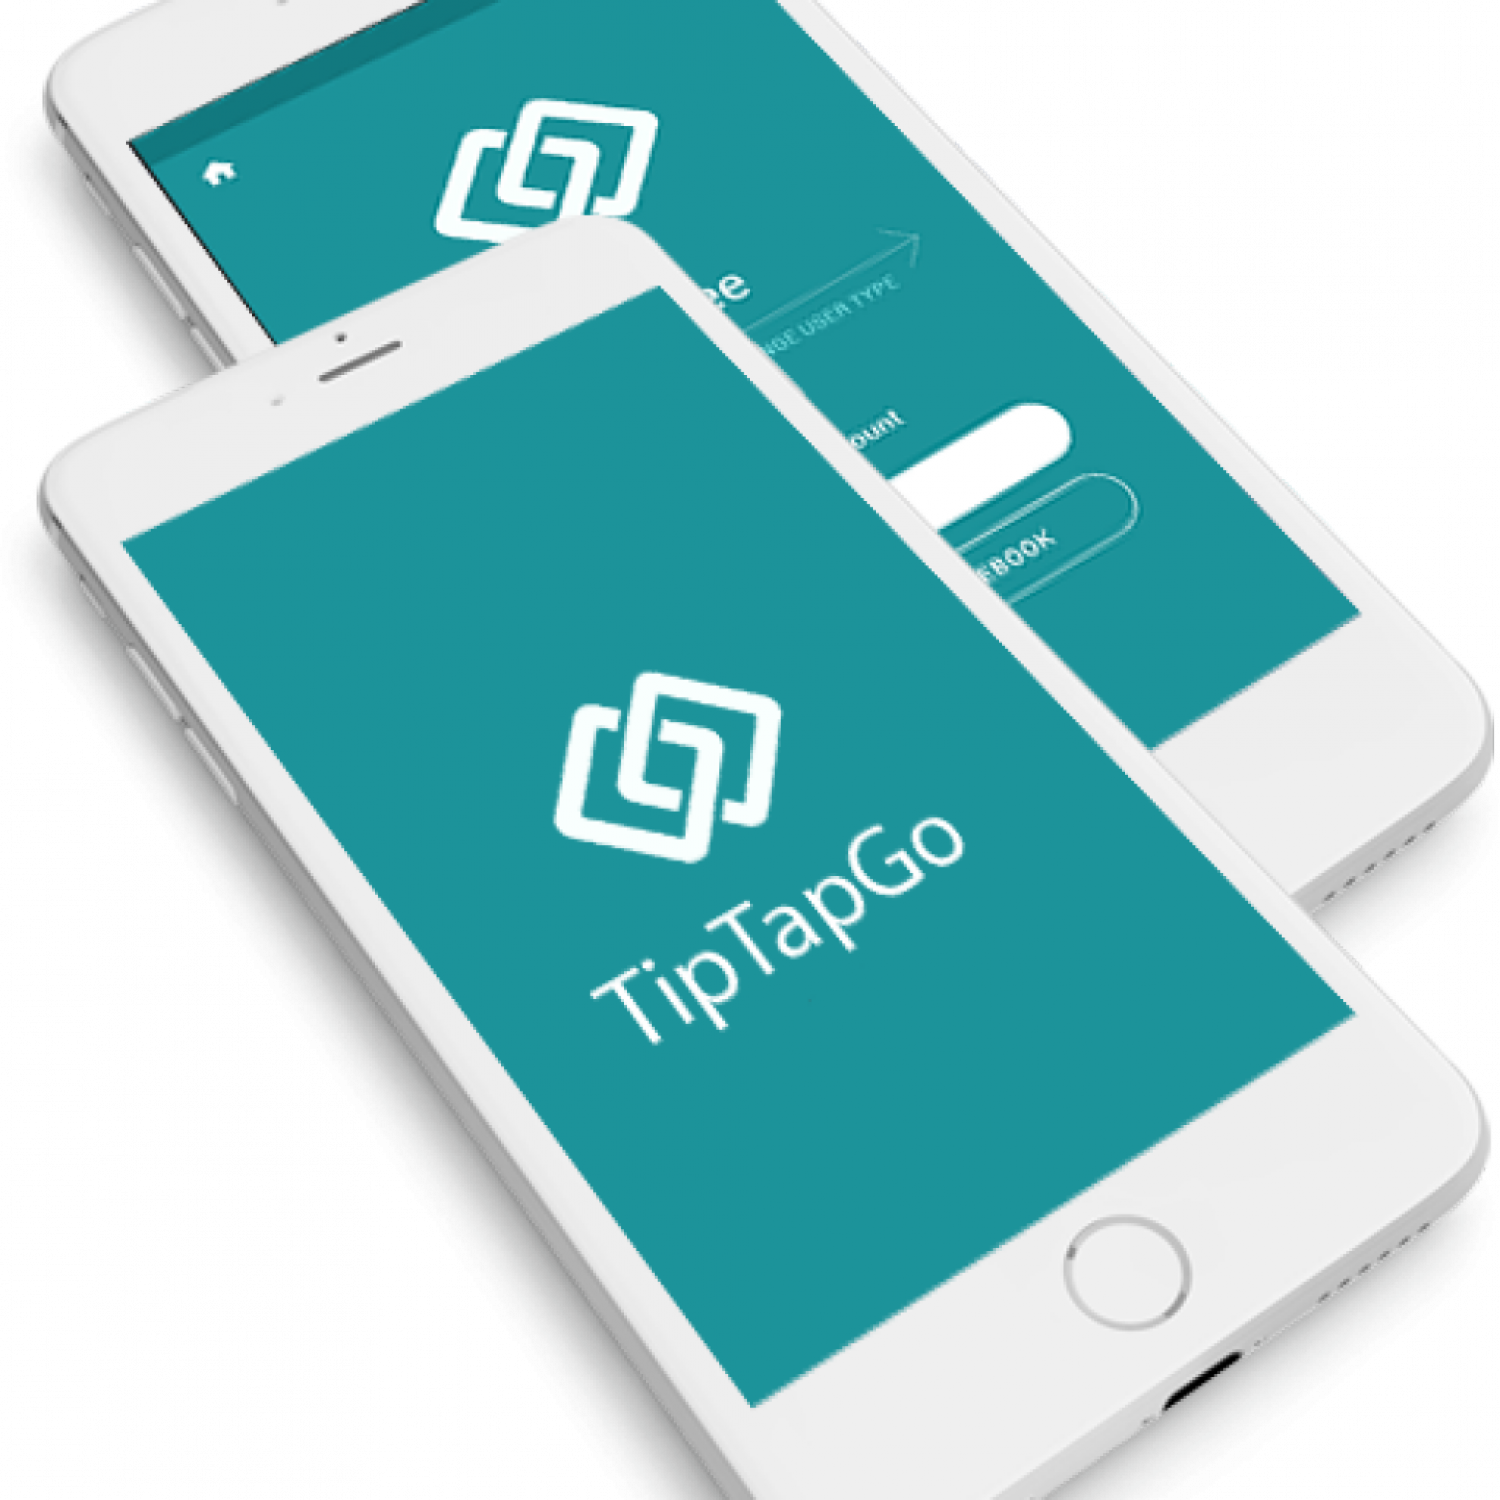 TipTapGo, a simple and secure payment app Infographic